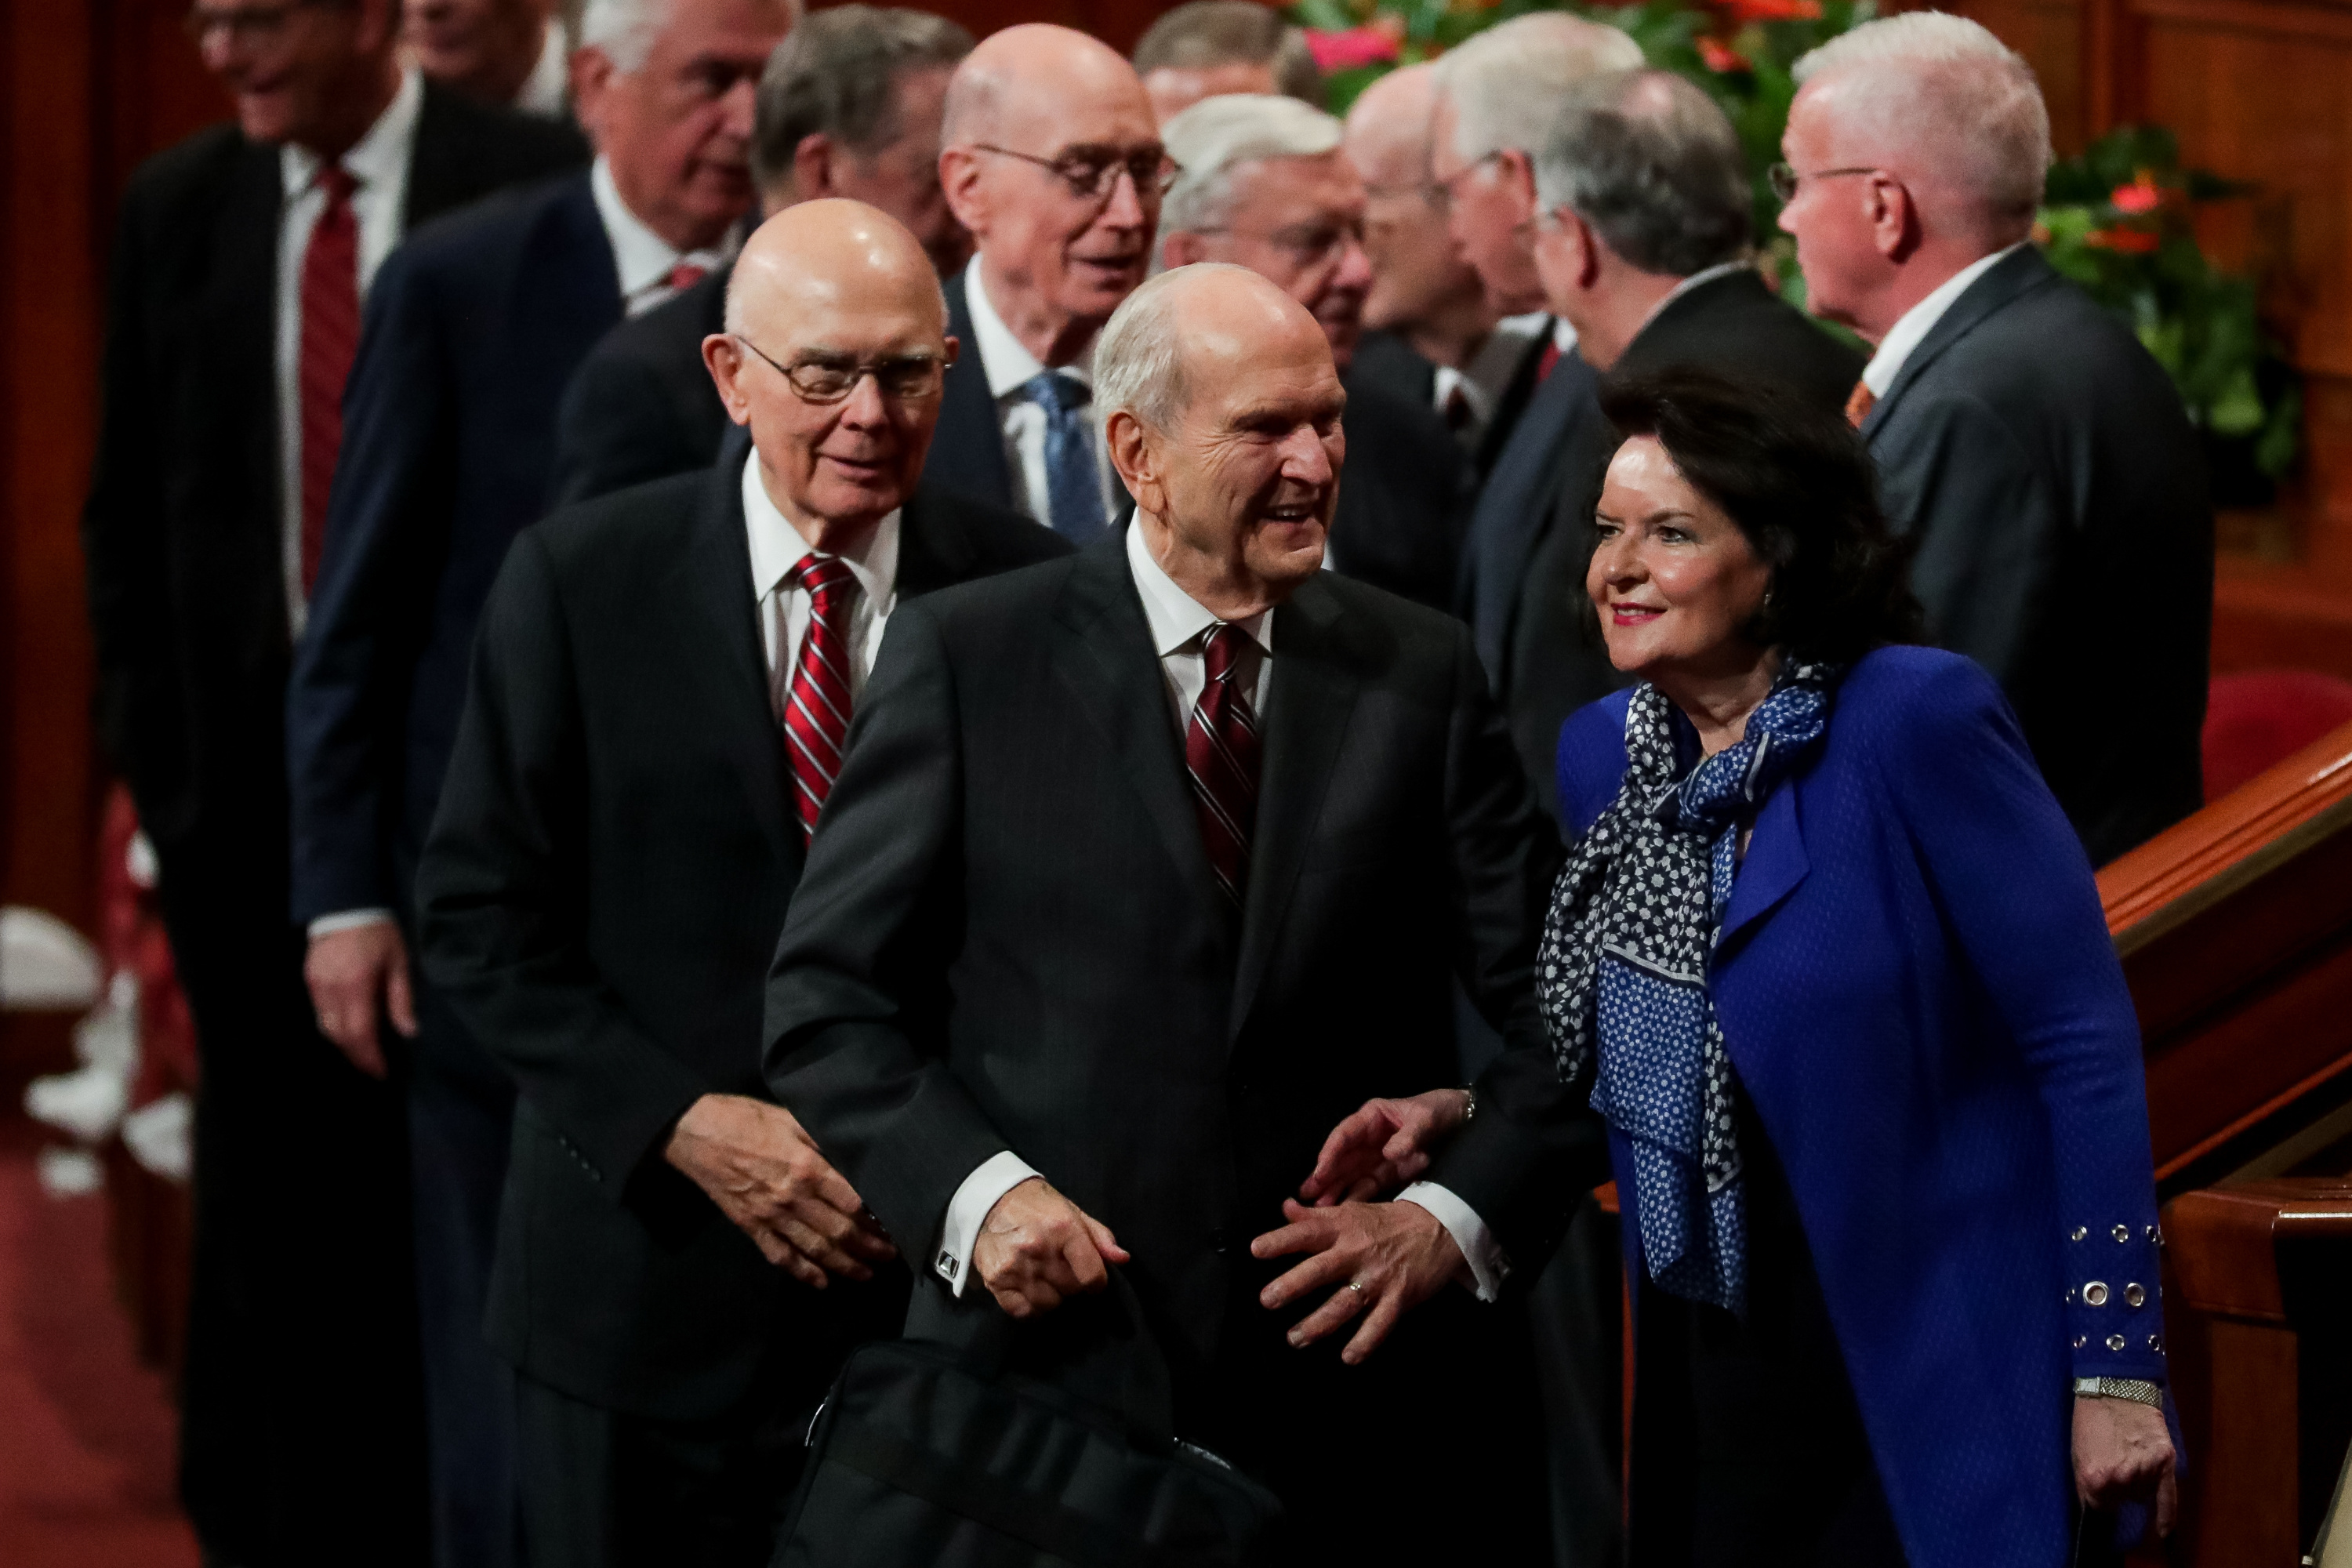 President Russell M. Nelson and his wife, Sister Wendy Nelson, leave the rostrum at the end of the Saturday afternoon session of the 188th Semiannual General Conference of The Church of Jesus Christ of Latter-day Saints in the Conference Center in Salt Lake City on Saturday, Oct. 6, 2018.